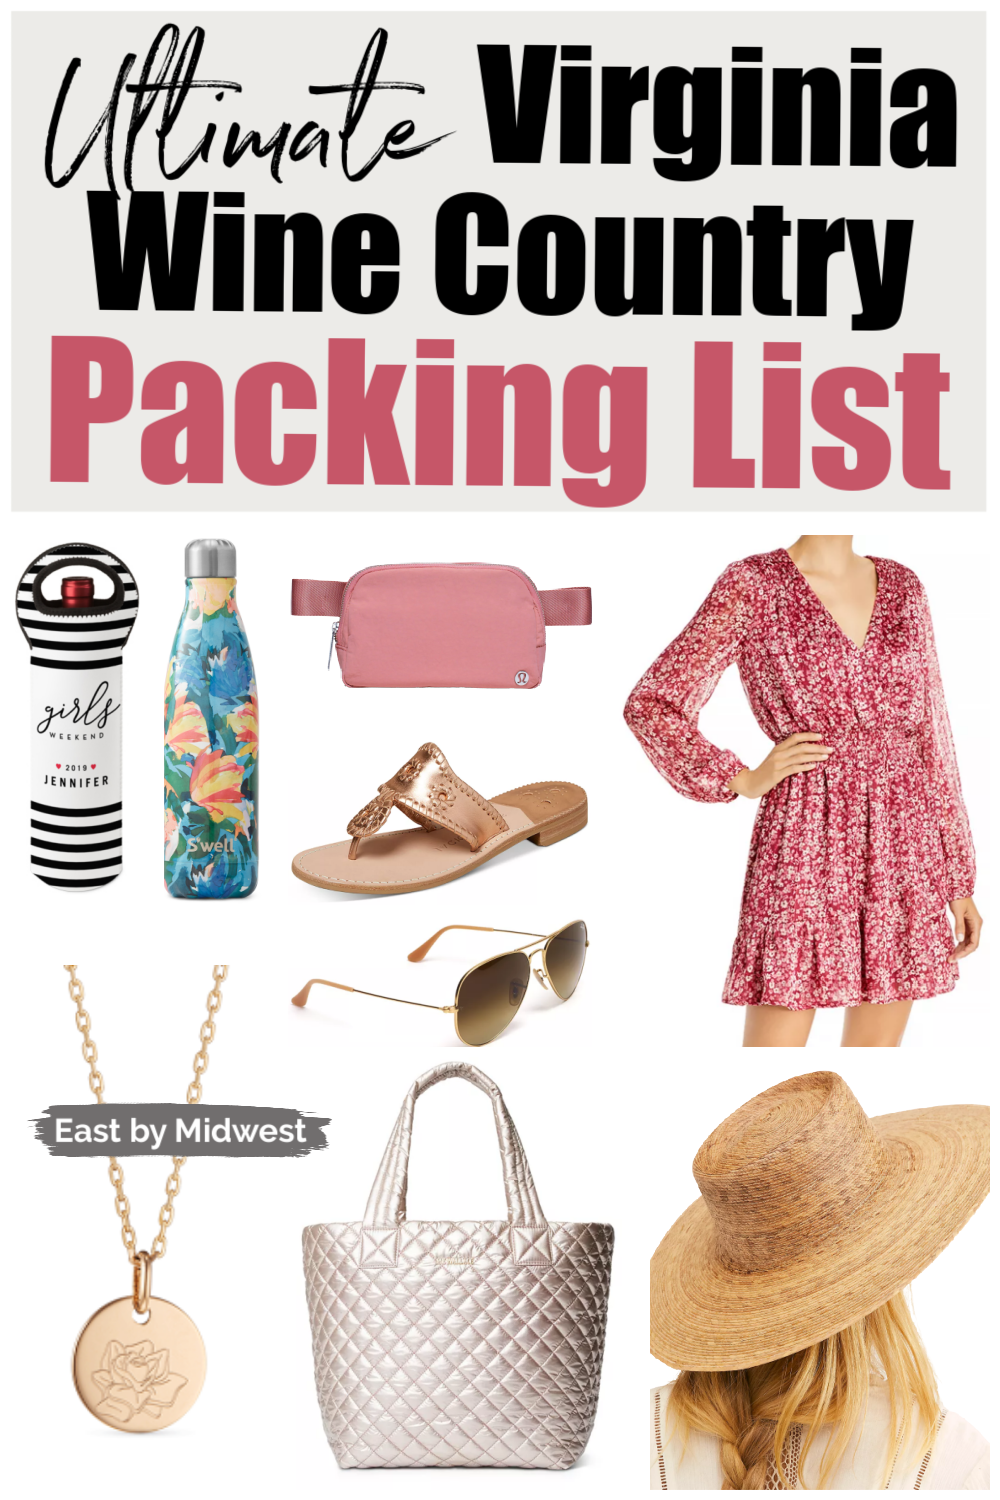 What to Pack for a Perfect Weekend in Virginia Wine Country